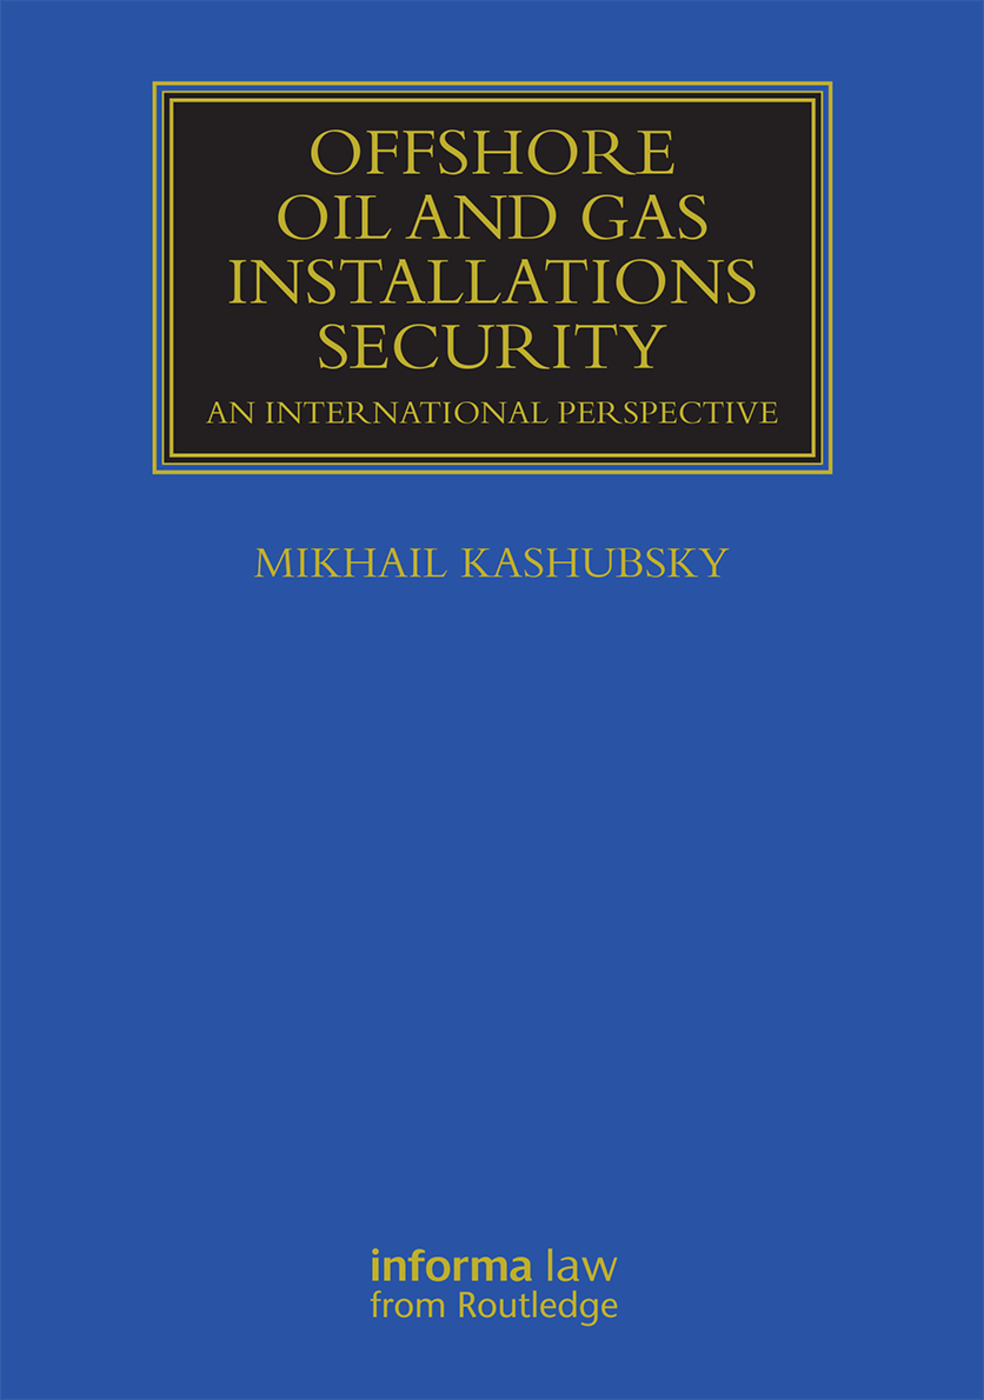 Offshore Oil and Gas Installations Security: An International Perspective book cover